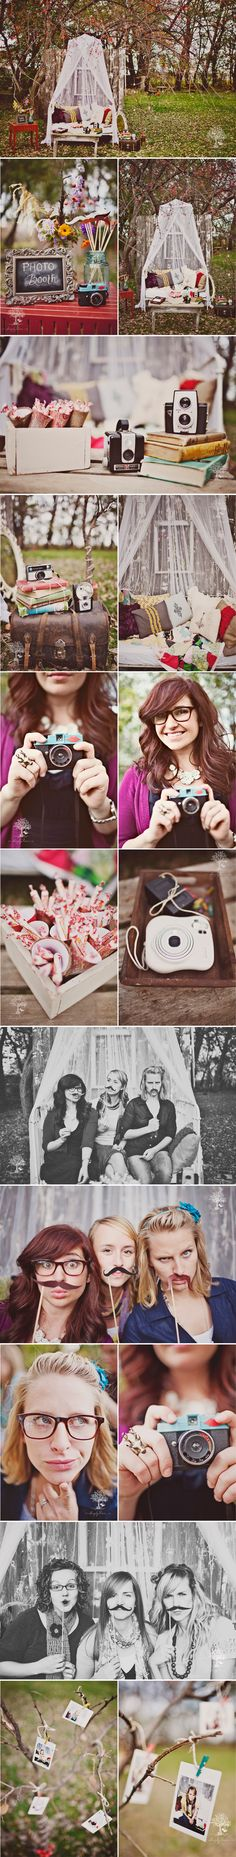 Okay cute idea with the photo booth...might be a fun idea to have at a wedding or even set up for a family gathering or holiday party?